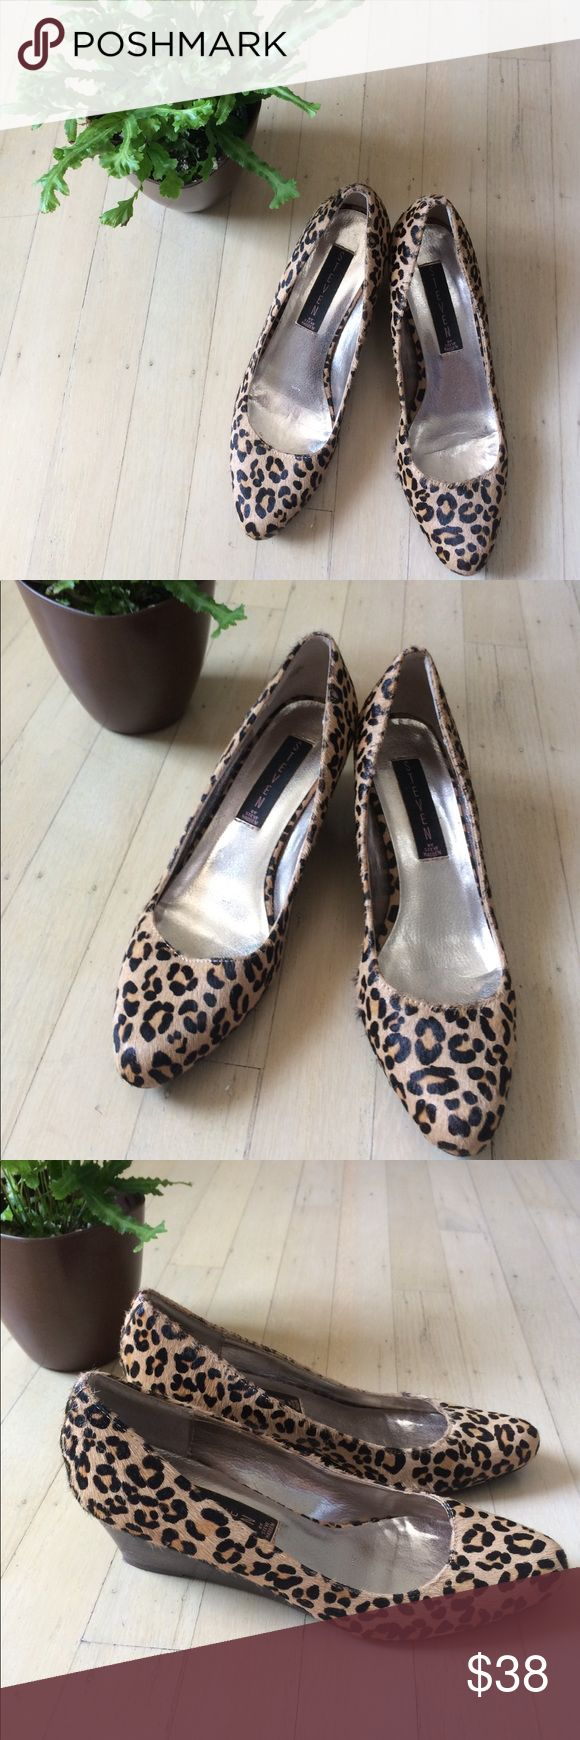 ✨🖤Steven Leopard wedge heels 🖤✨ ✨🖤Steven Leopard wedge heels 🖤✨ Preloved like new | worn once Steven By Steve Madden Shoes Wedges